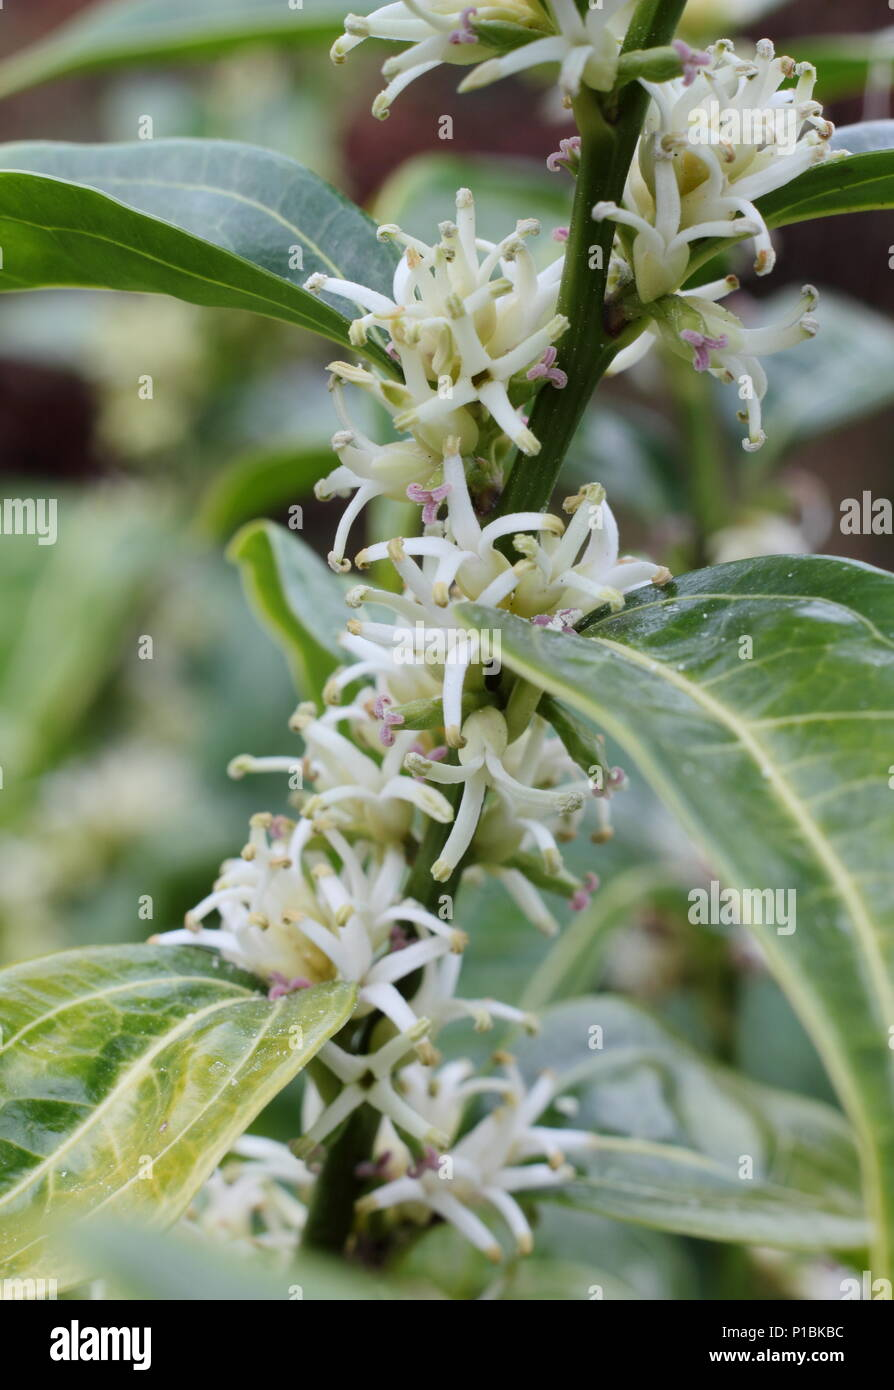 Sarcococca wallichii. Fragrant flowers of Sarcococca wallichii, also called Christmas box or Sweet box, in flower in a winter garden, UK - Stock Image